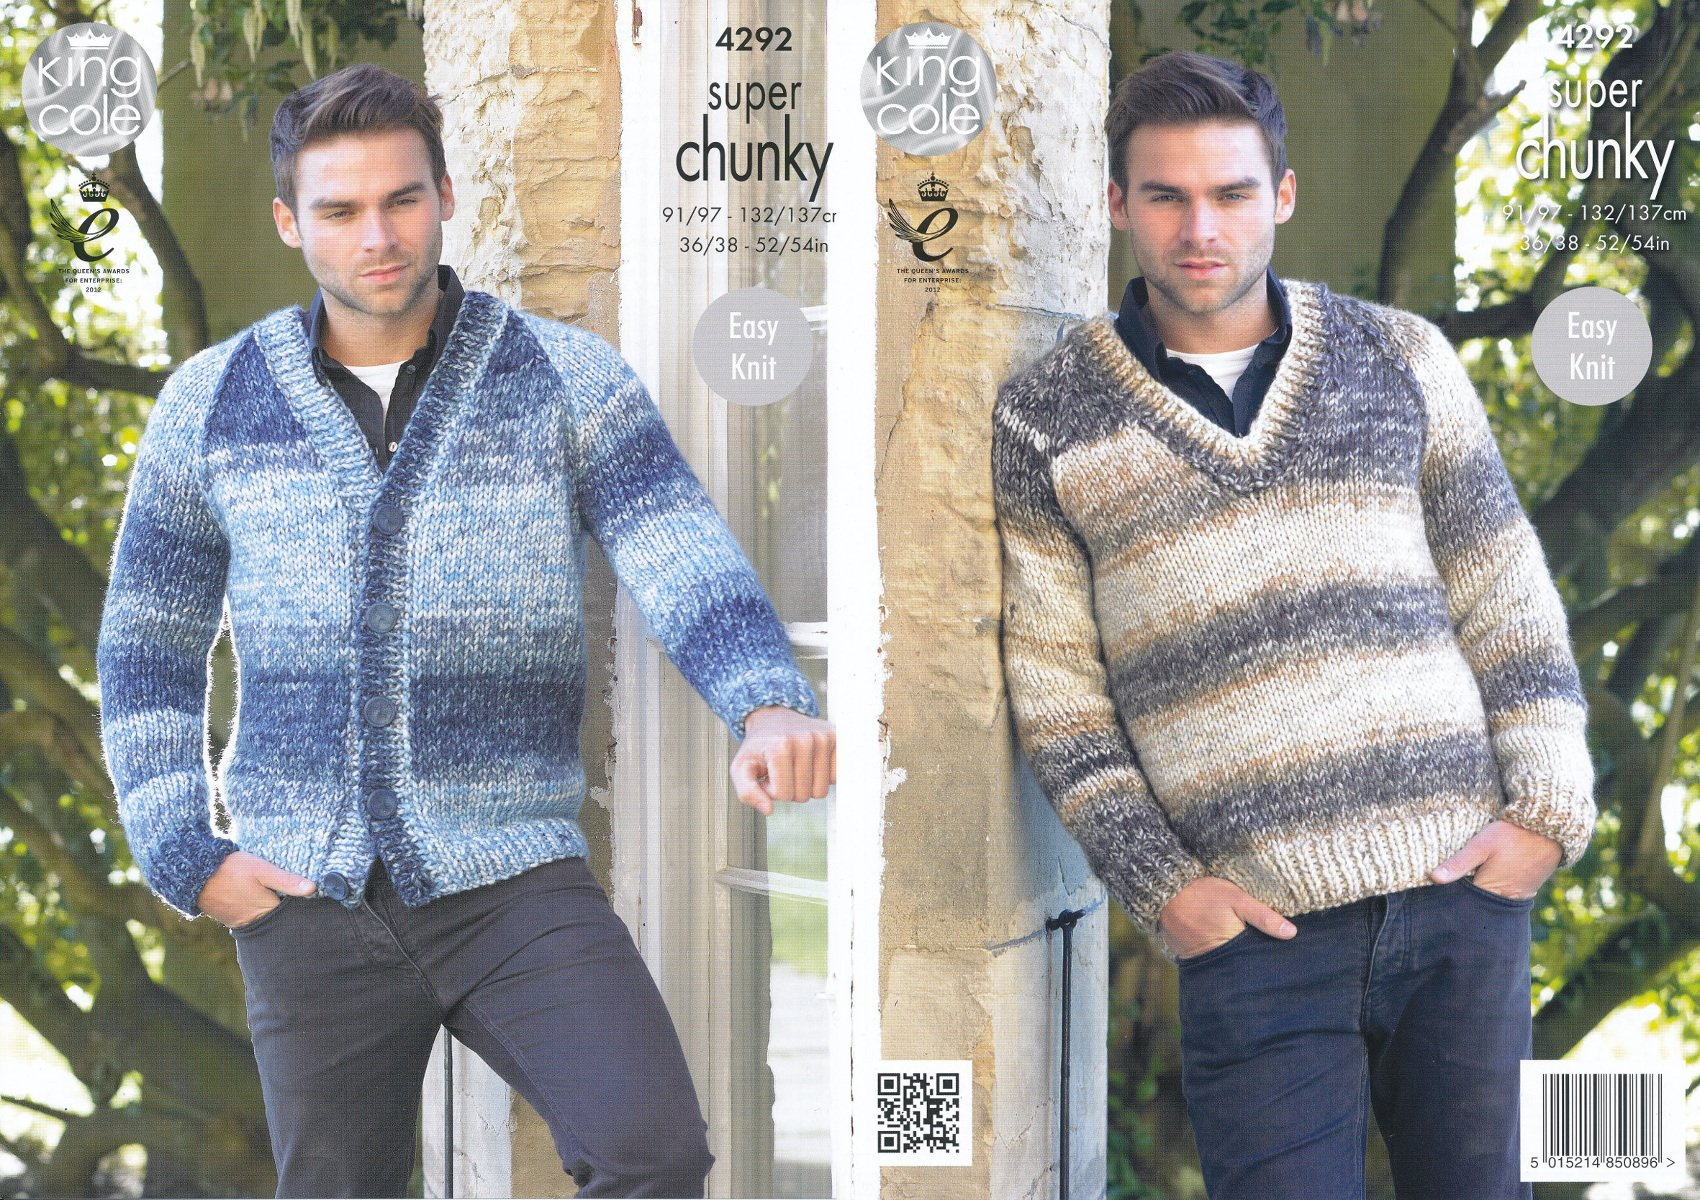 bdc1998d0288f0 King Cole Mens Easy Knit Super Chunky Tints Knitting Pattern V Neck Sweater    Cardigan (4292)